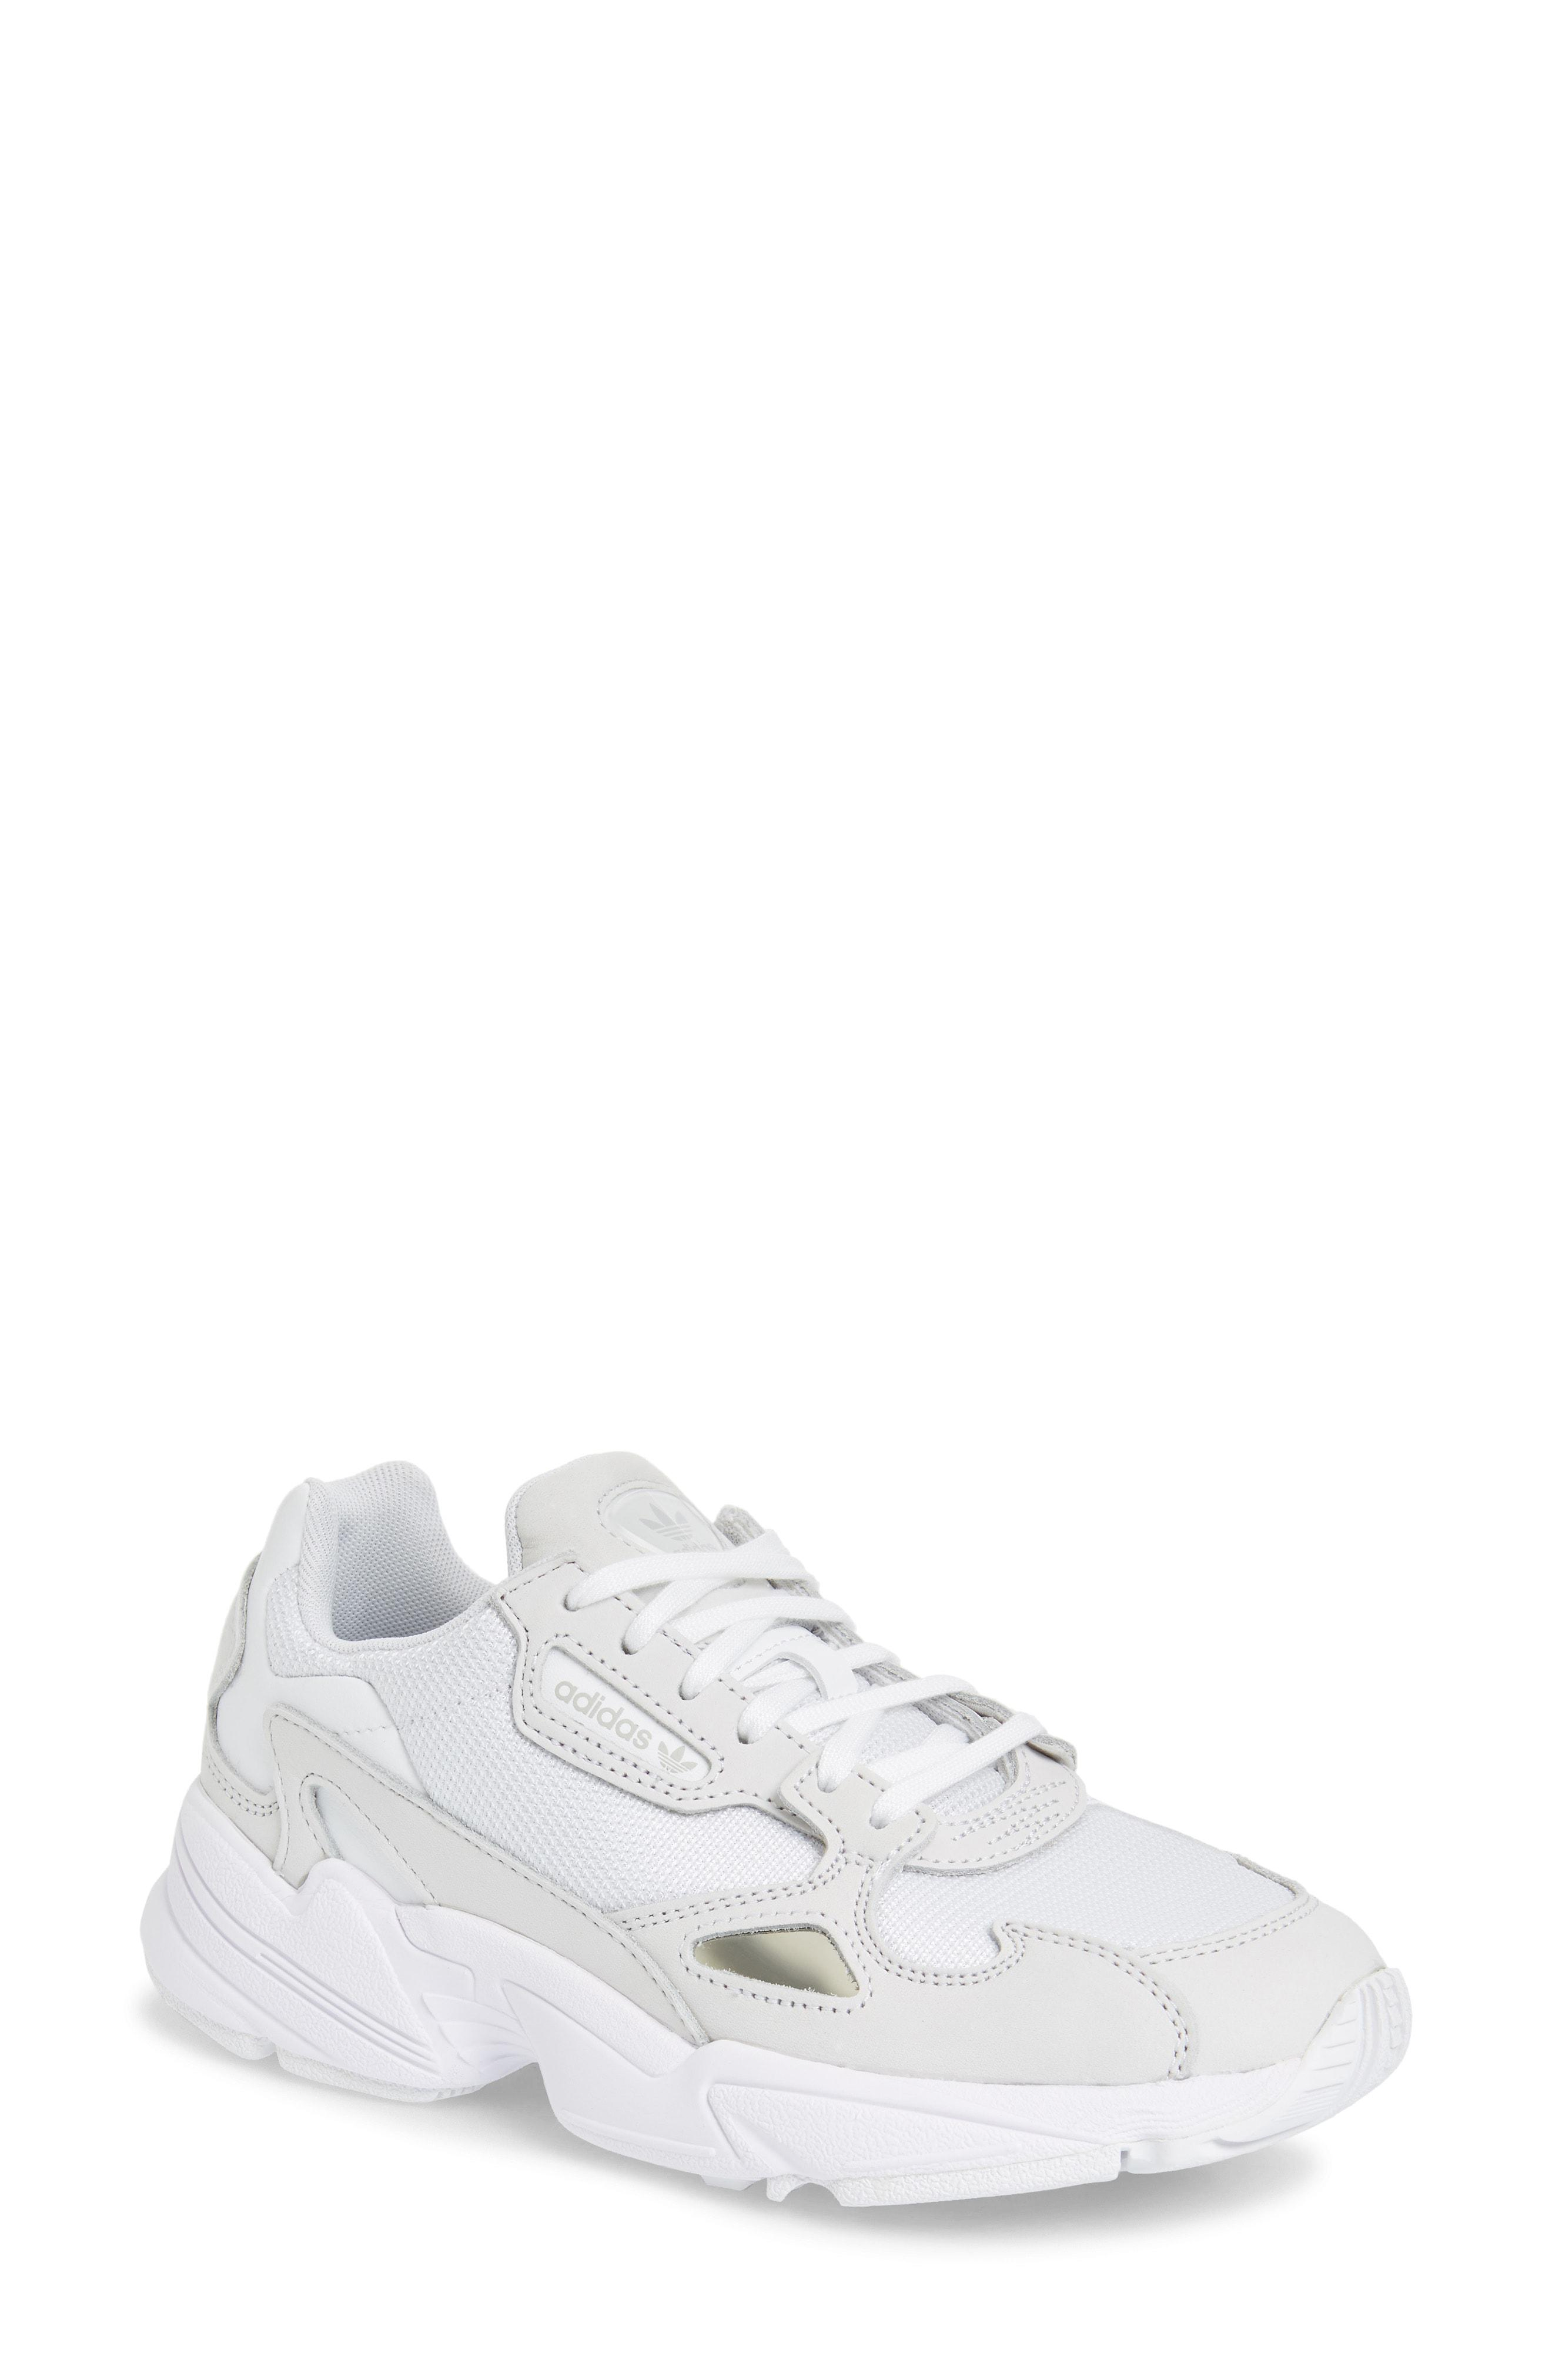 Lyst - adidas Falcon Sneaker in White 9ab1834c5